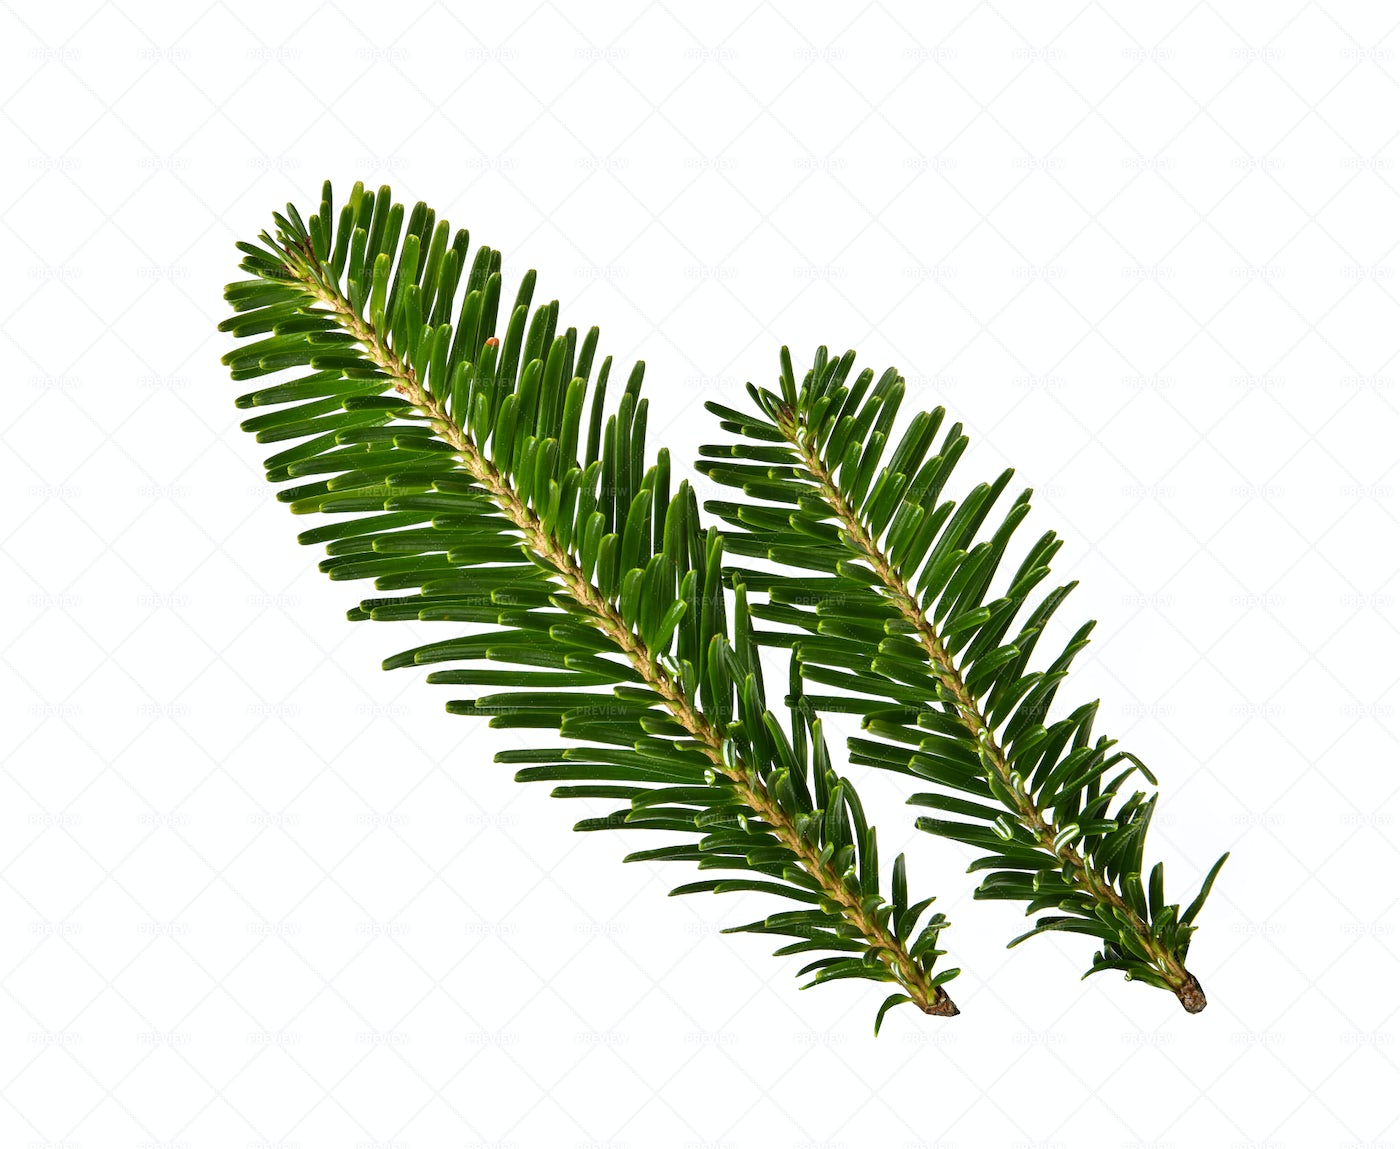 Spruce Tree Branches: Stock Photos